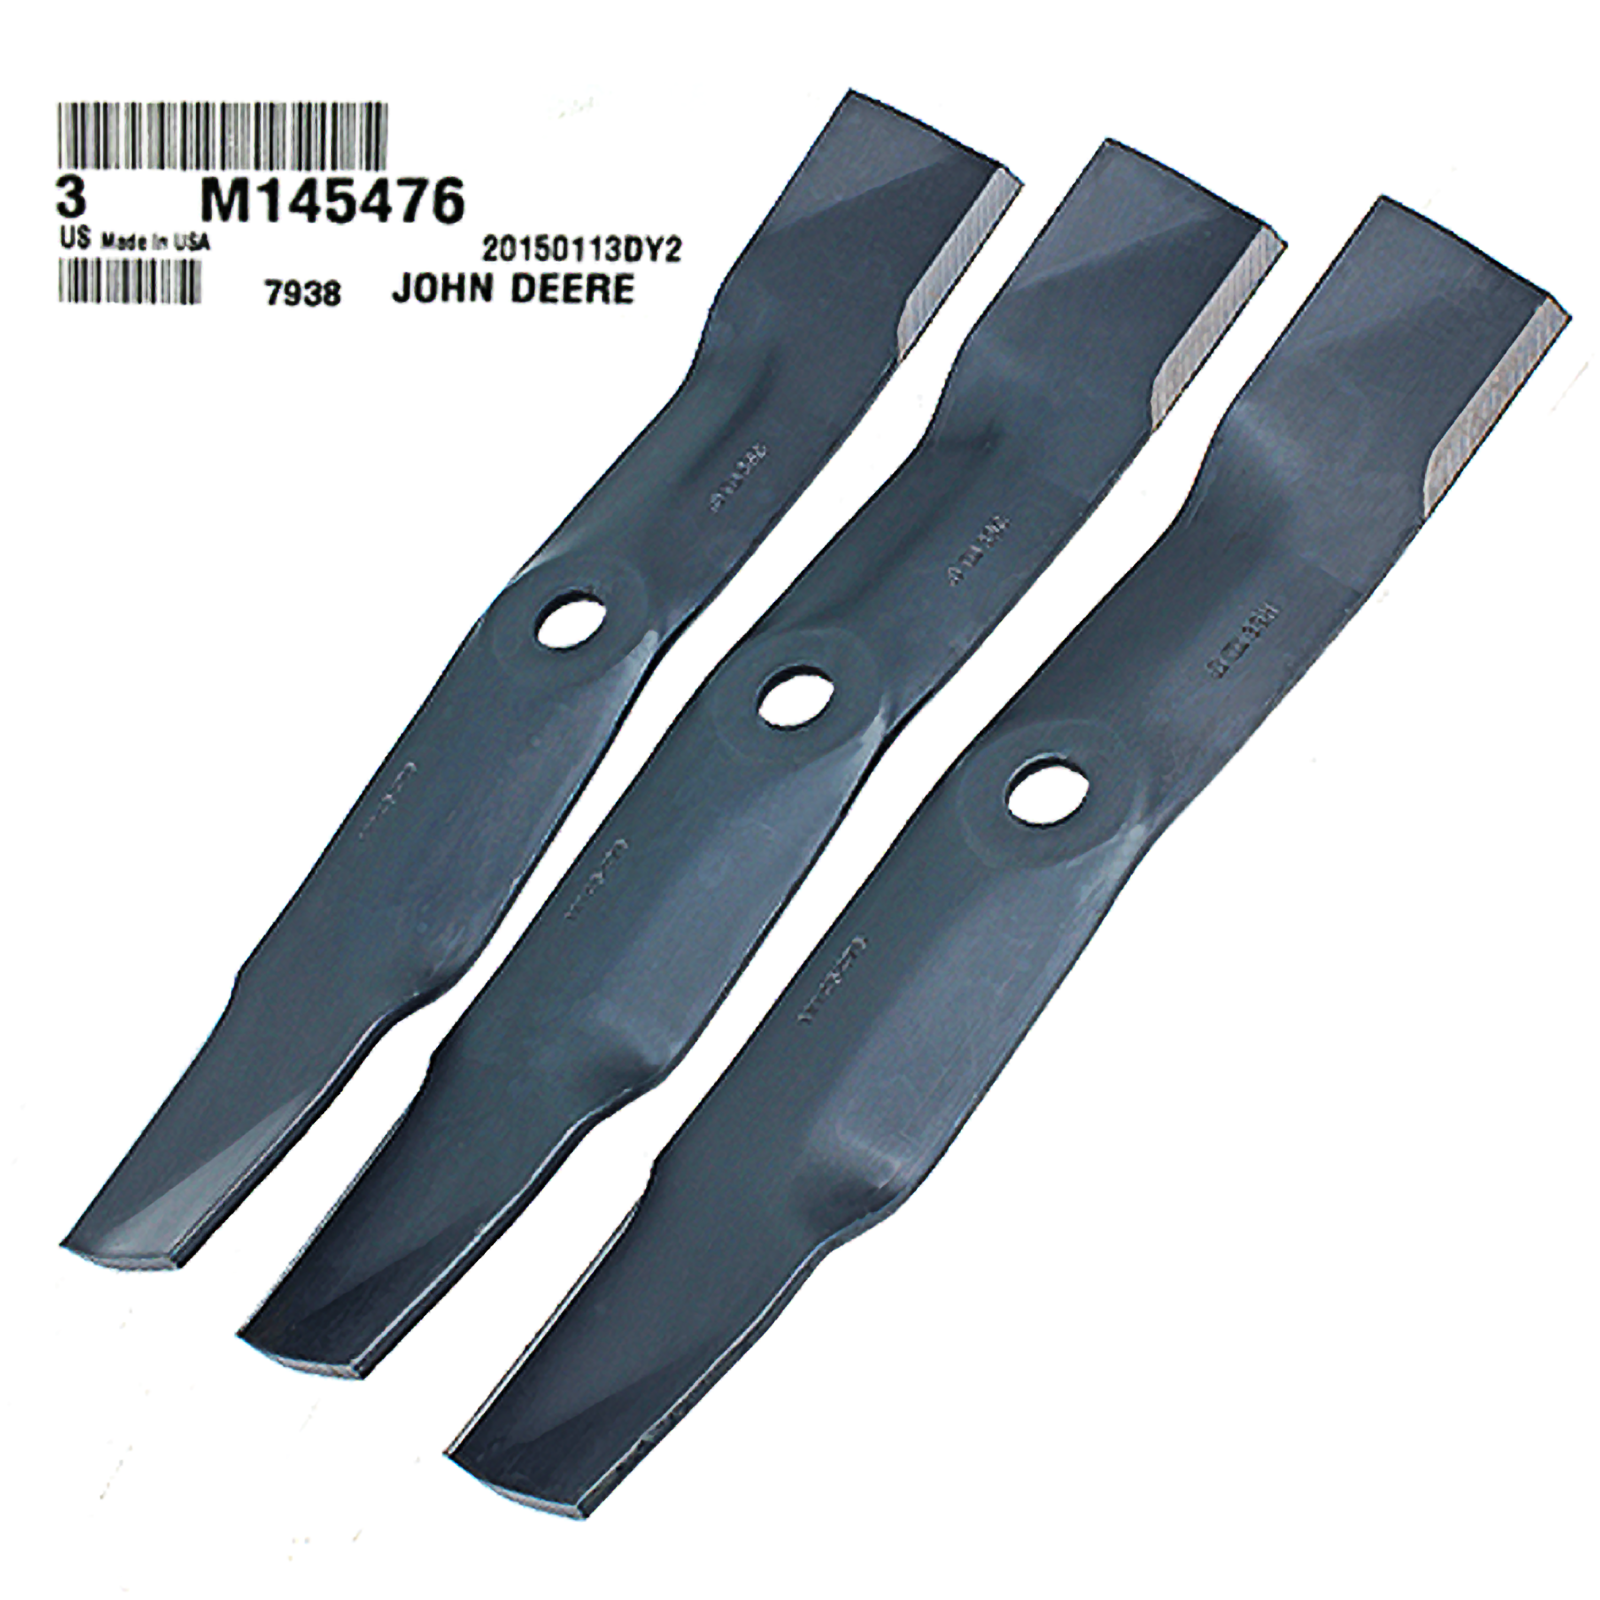 John Deere #M145476 Standard Mower Blades, Set of 3